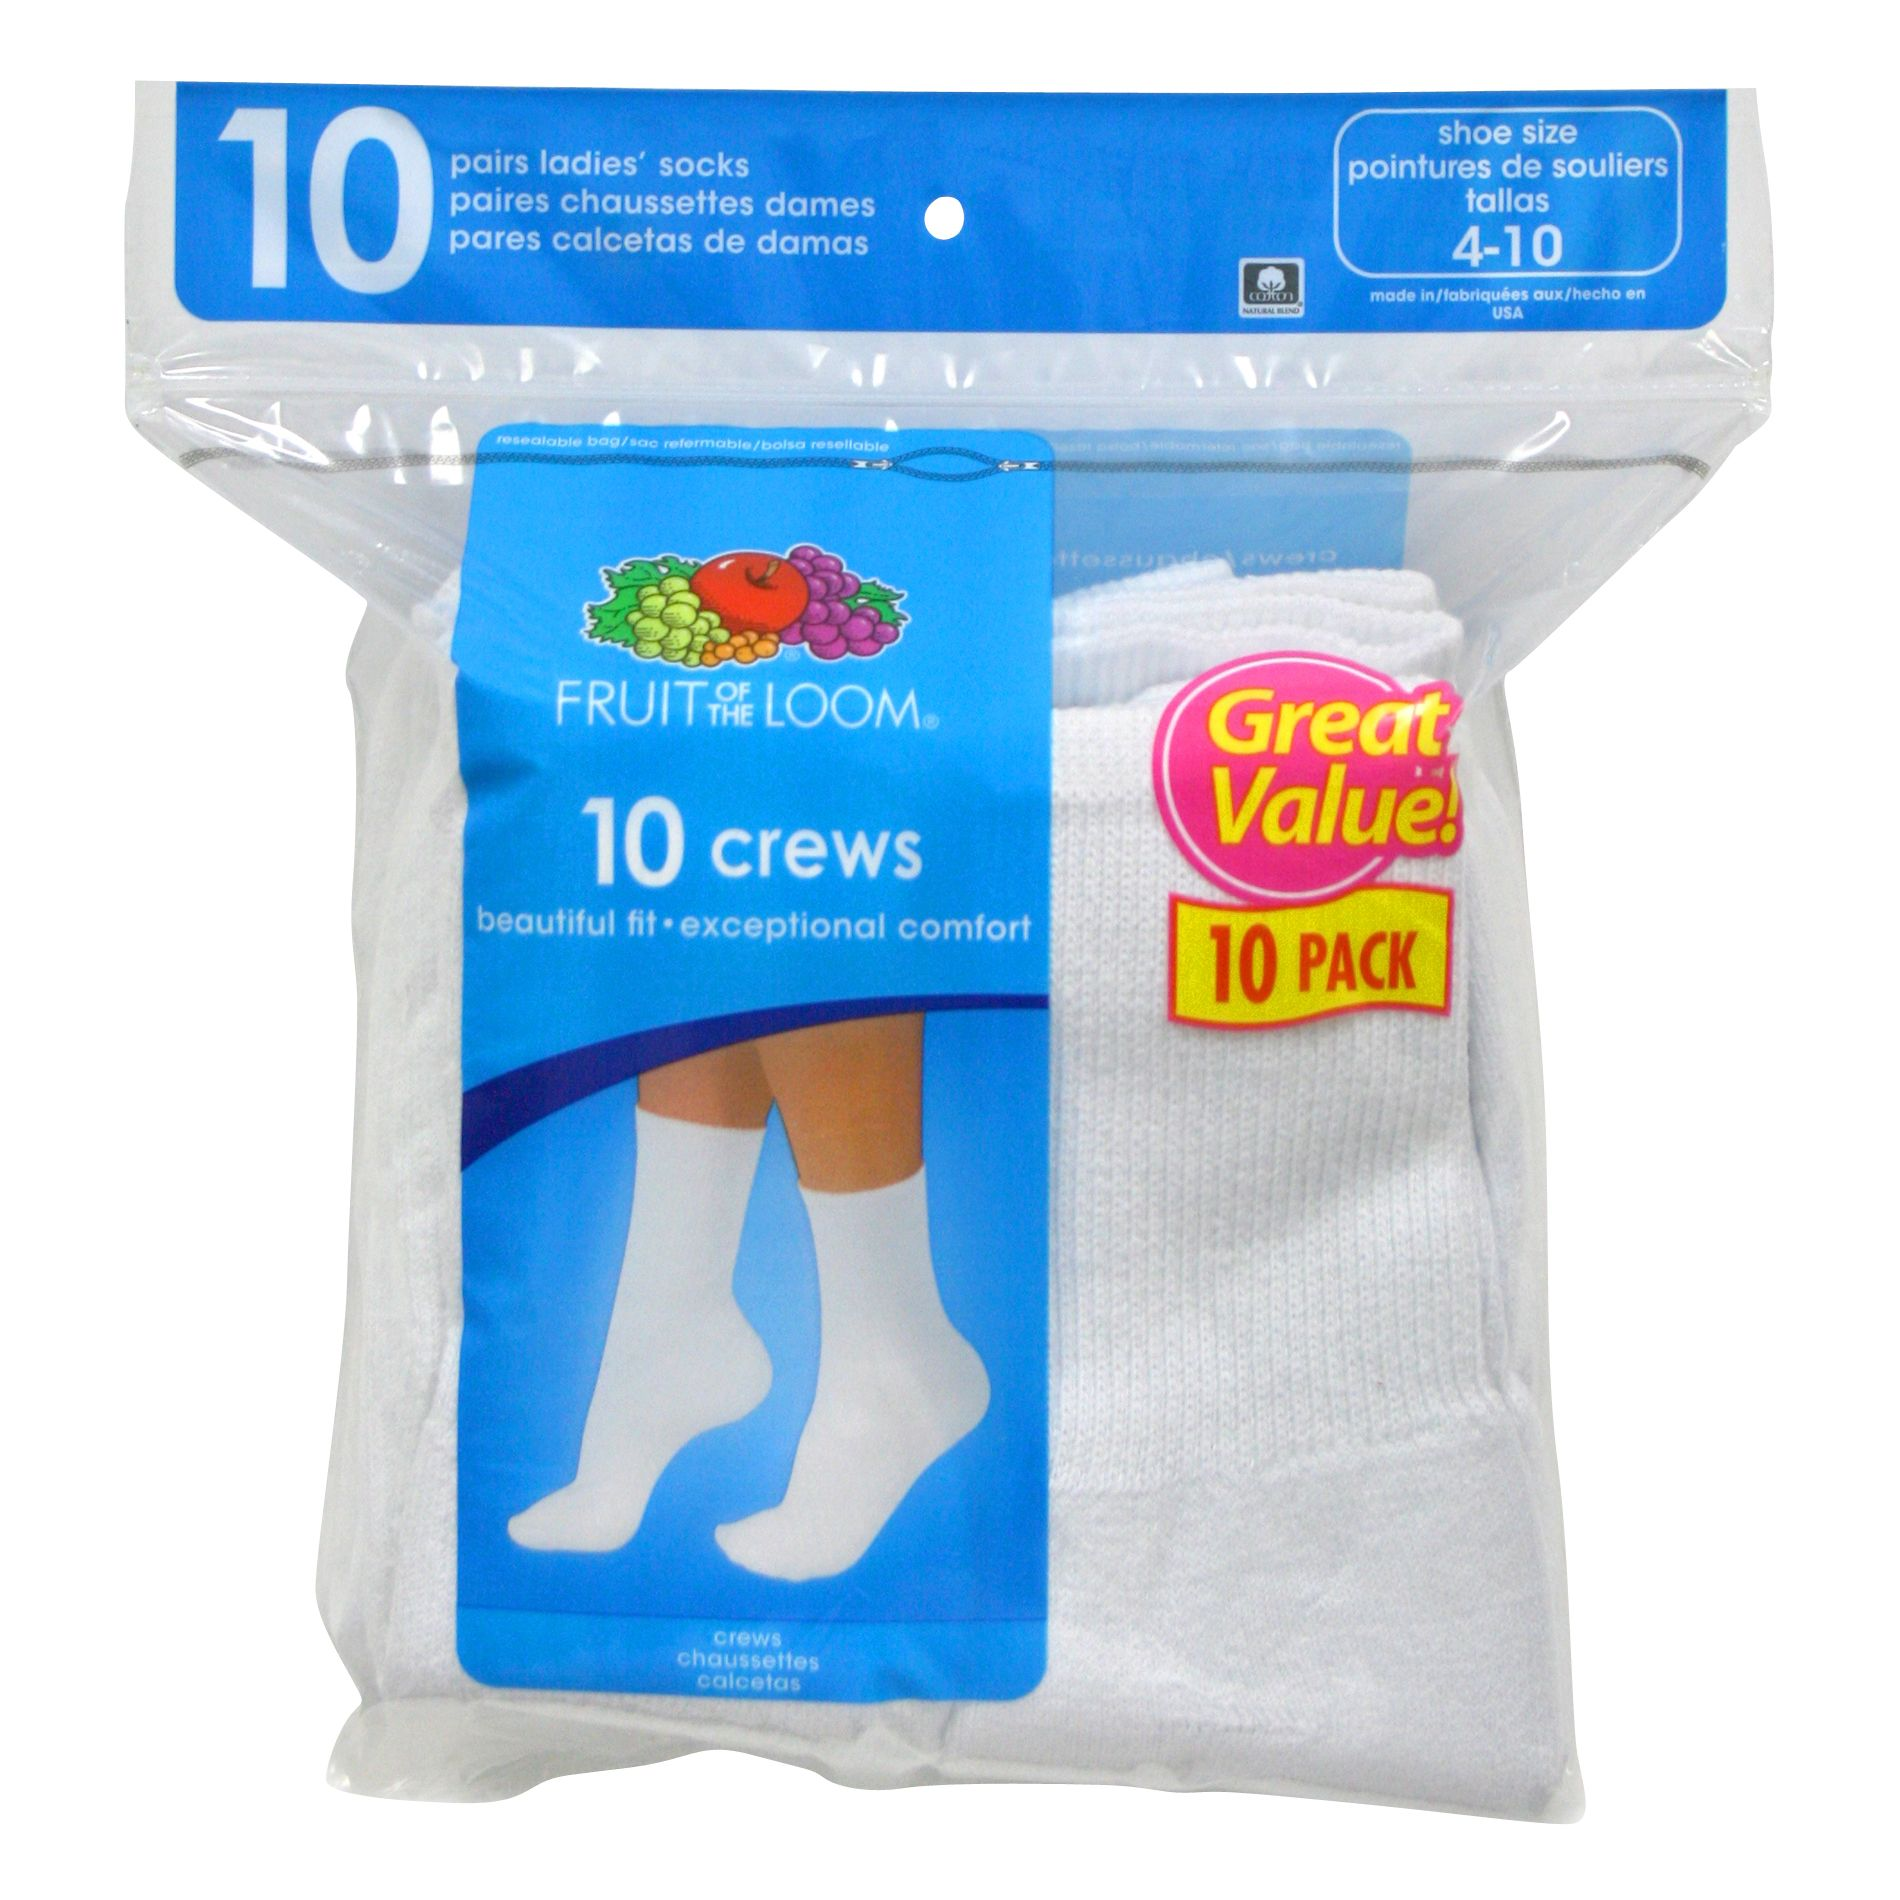 Fruit of the Loom Women's Crew Socks - 10pk